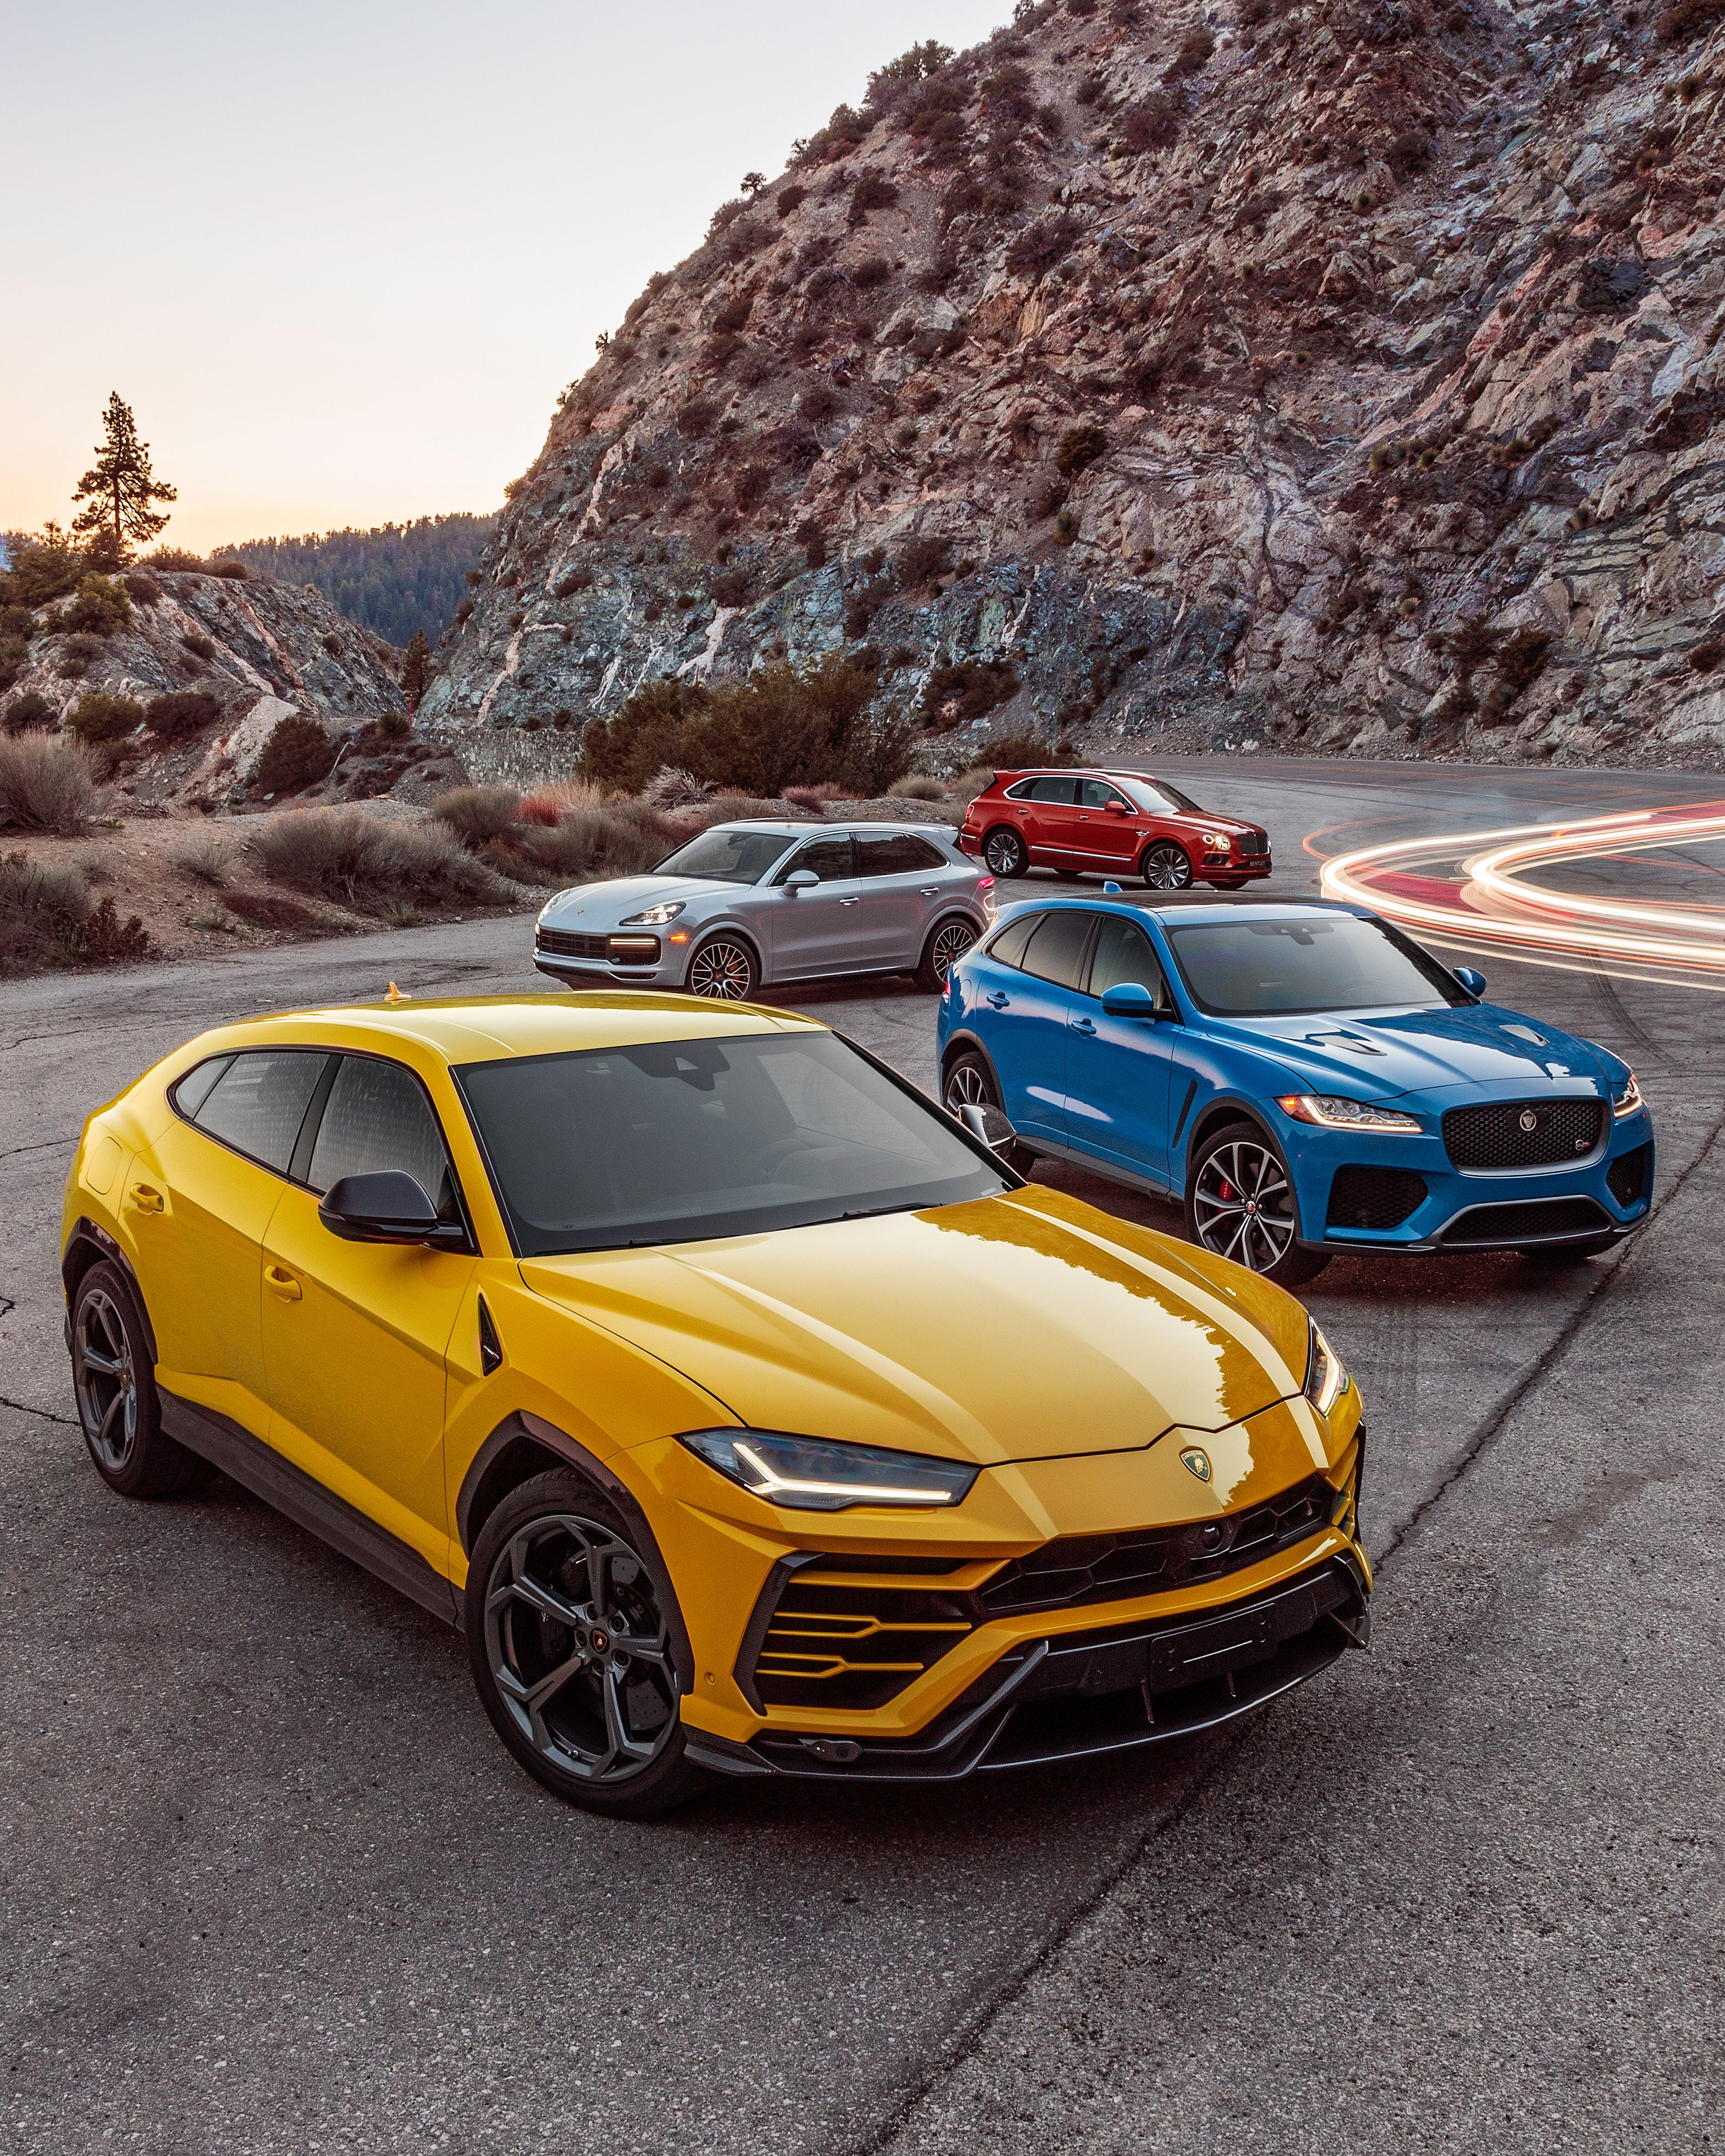 Porsche Cayenne Vs Lamborghini Urus Vs Bentley Bentayga Vs